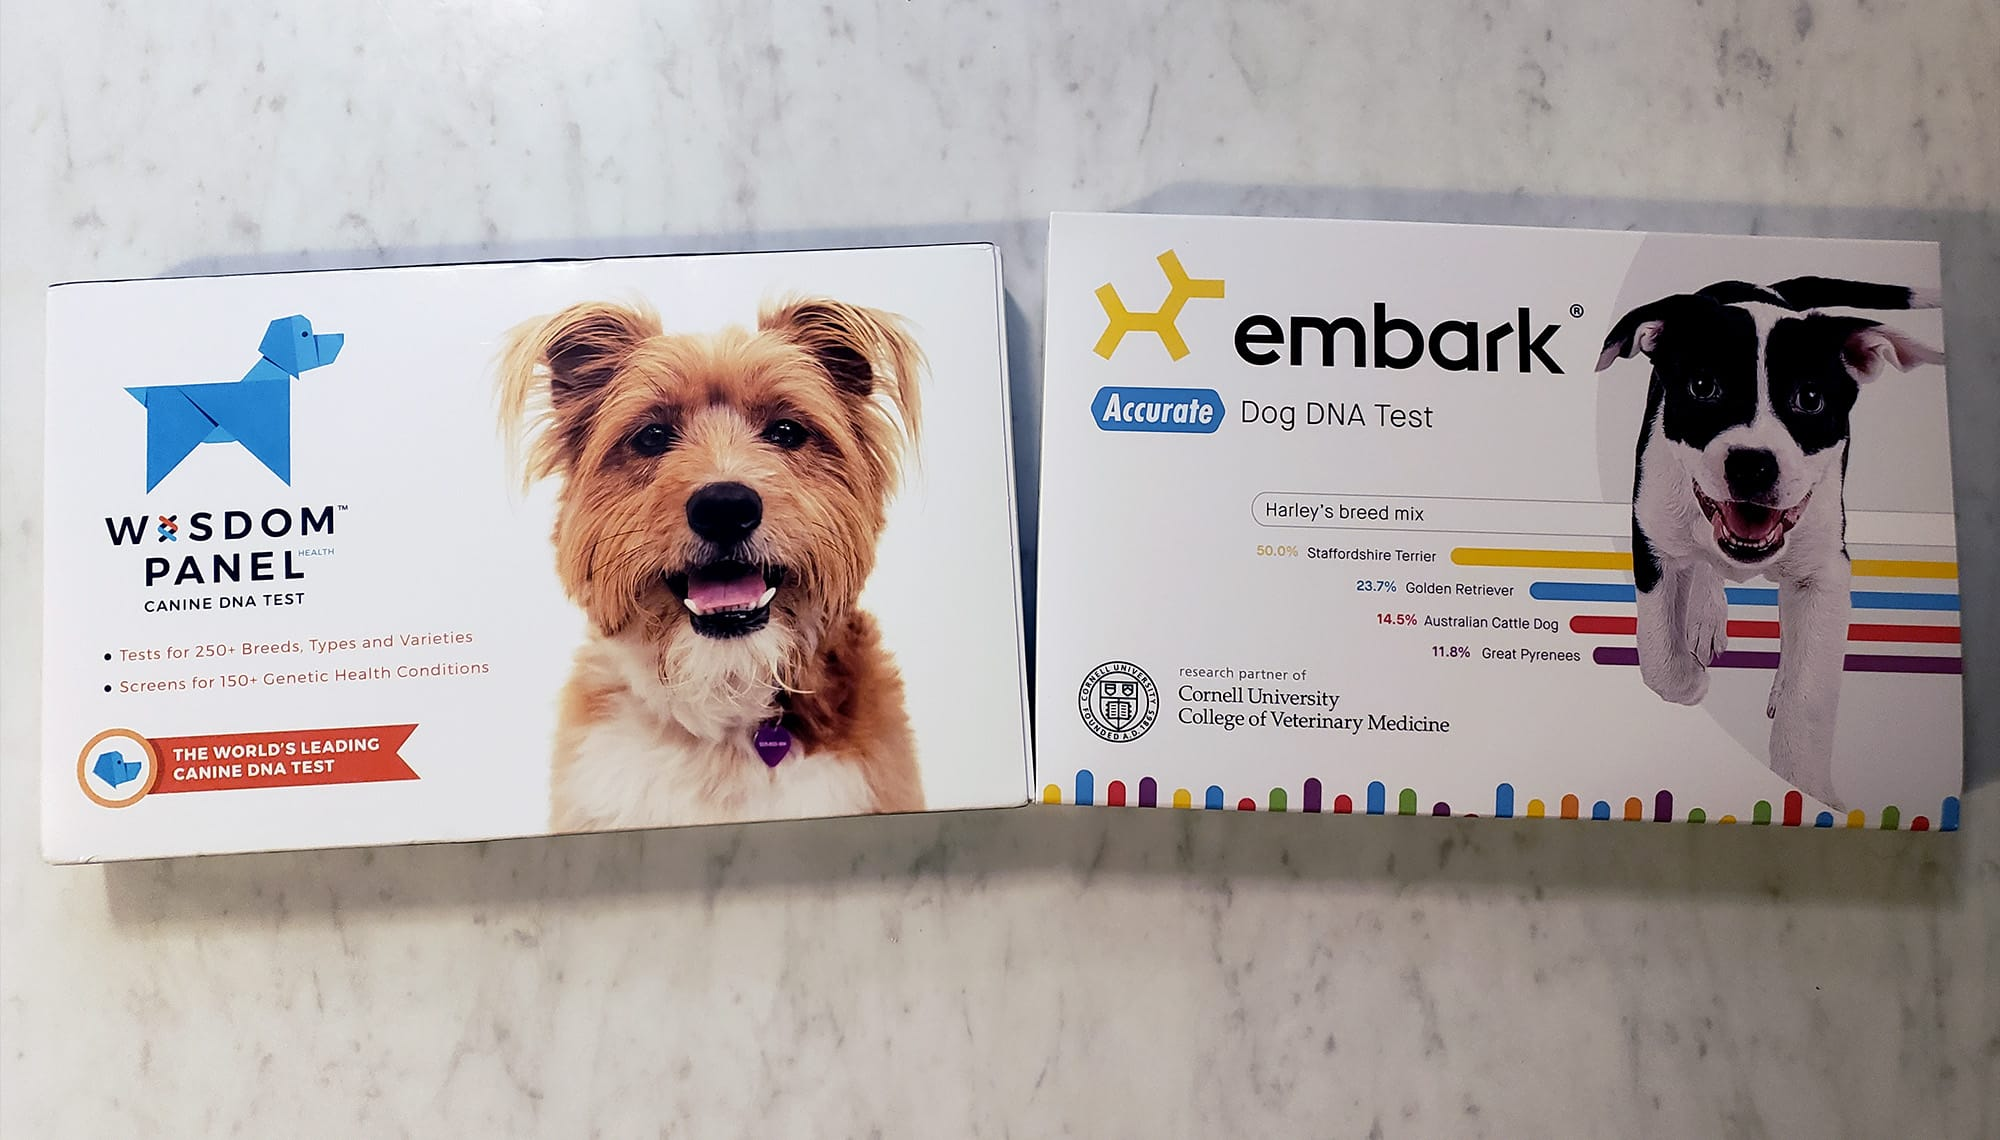 embark vs wisdom panel